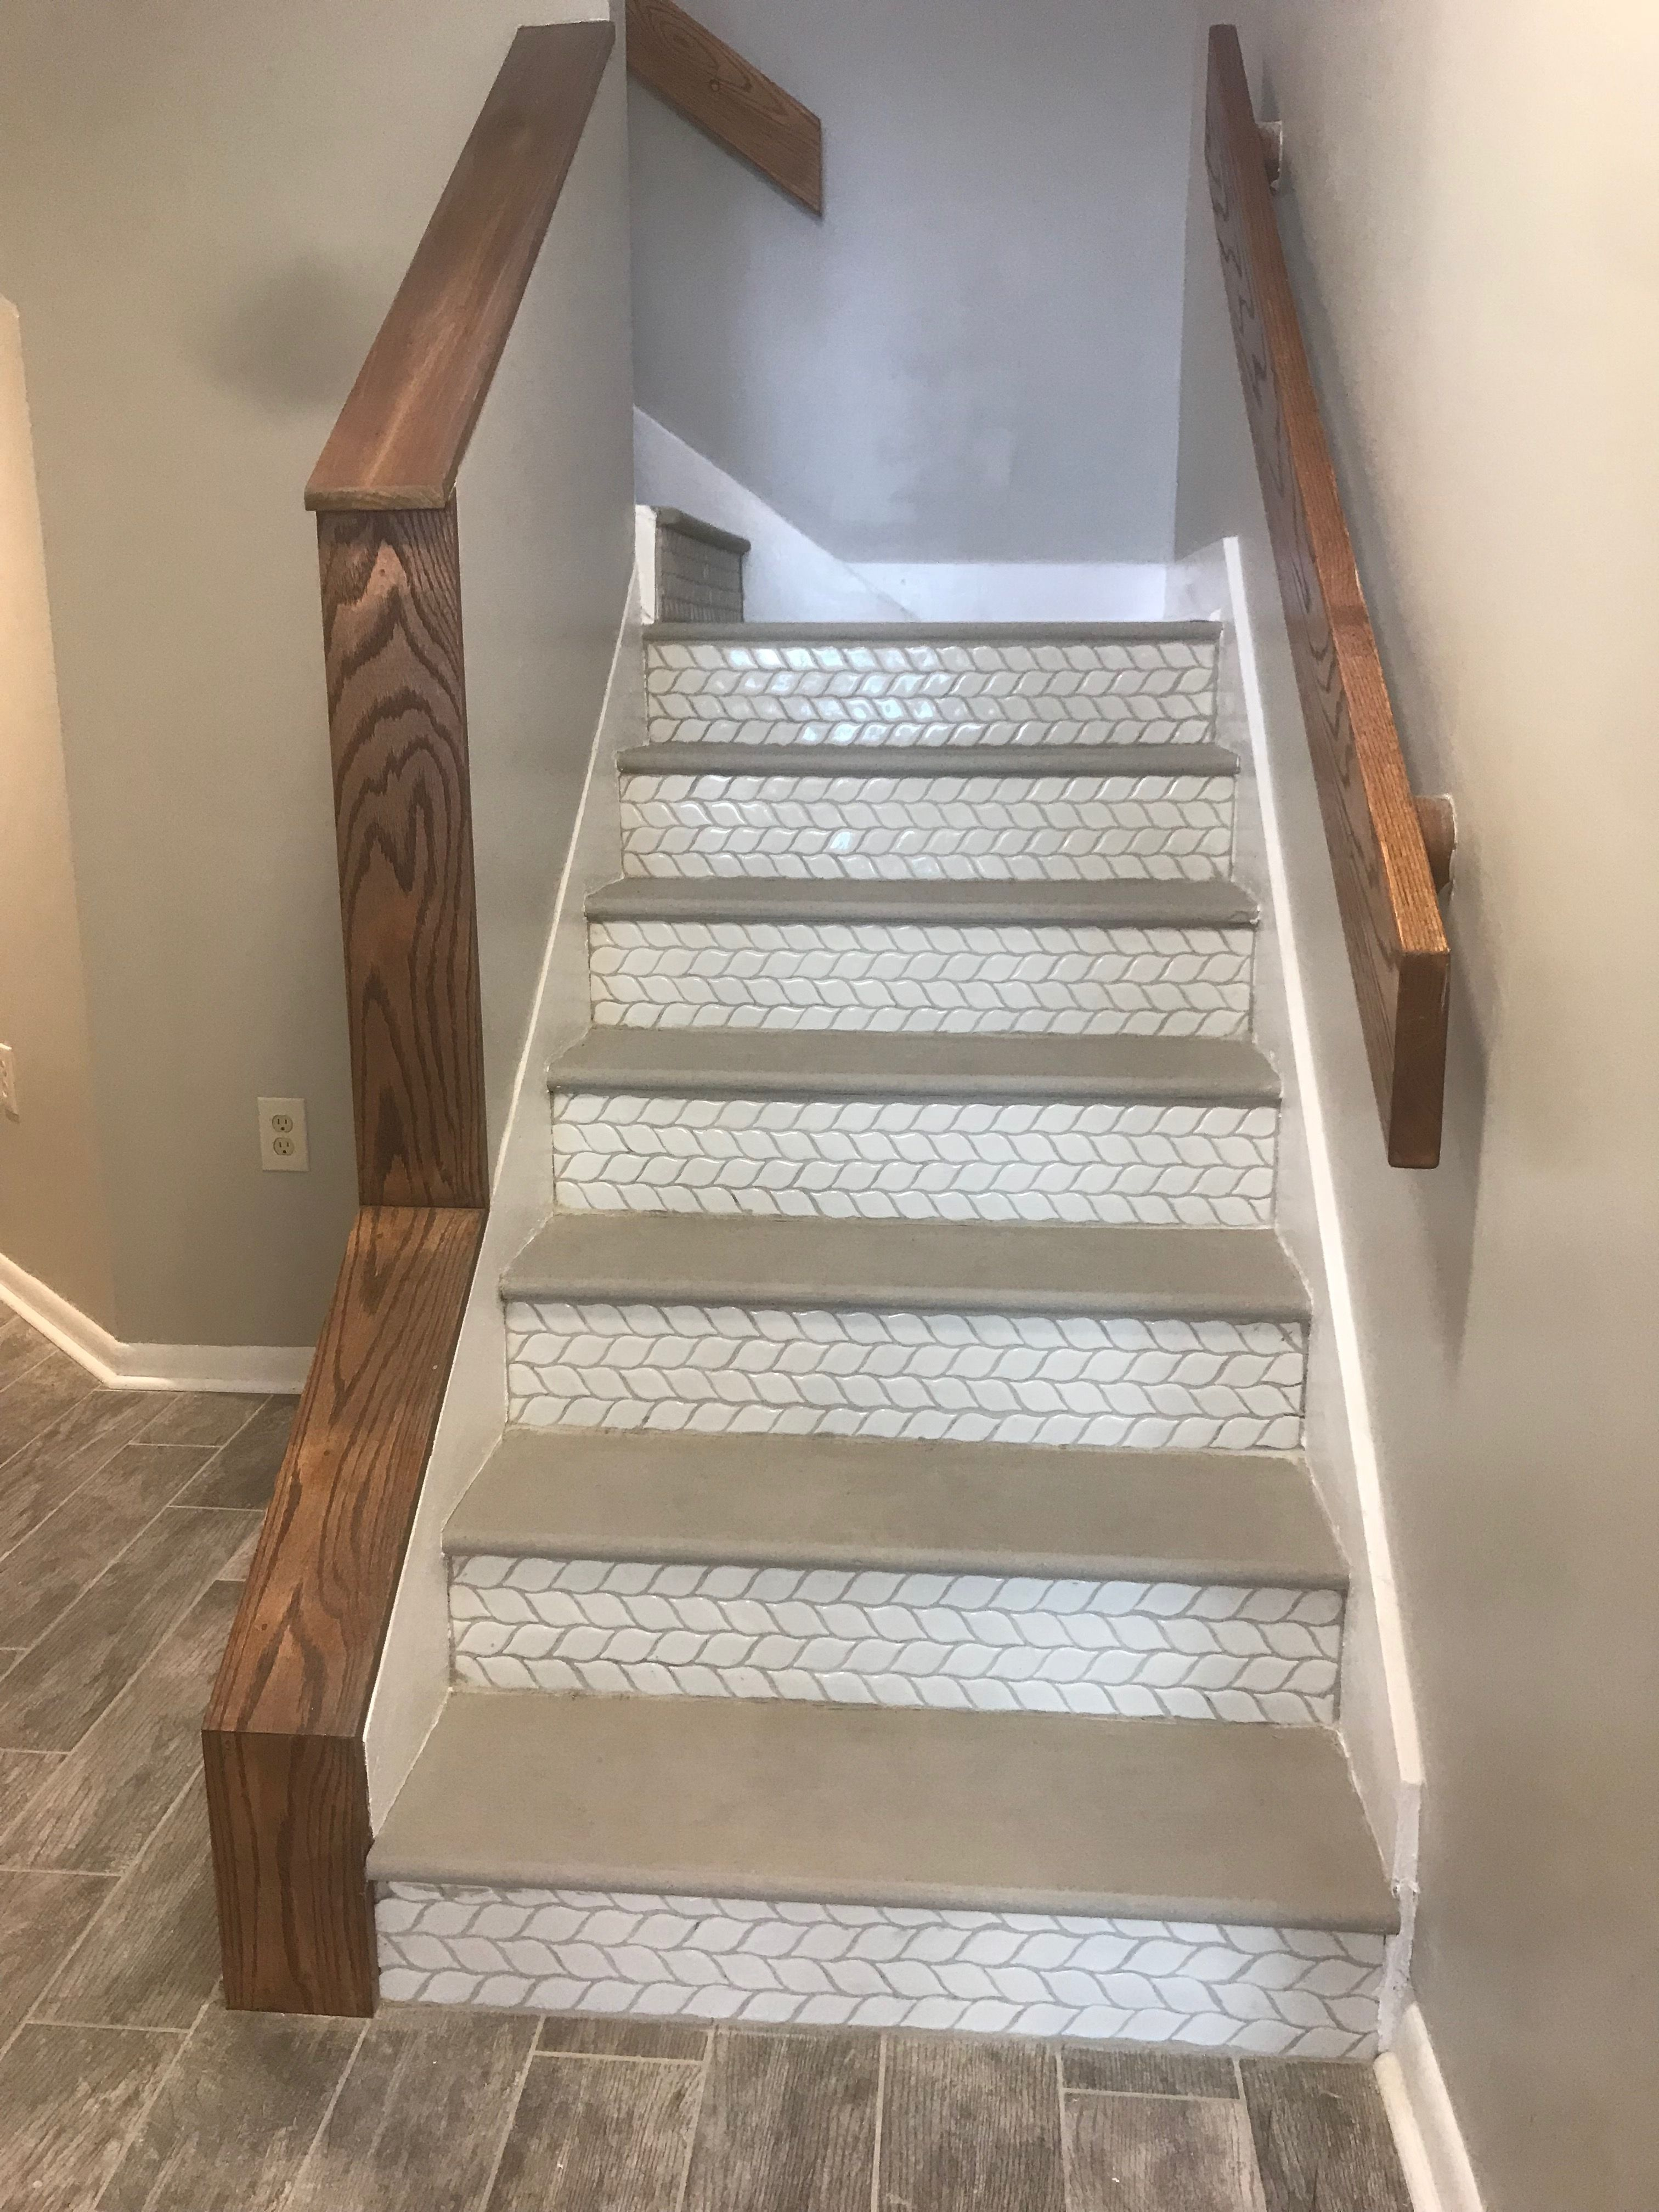 Charmant Stair Renovation For Under$300